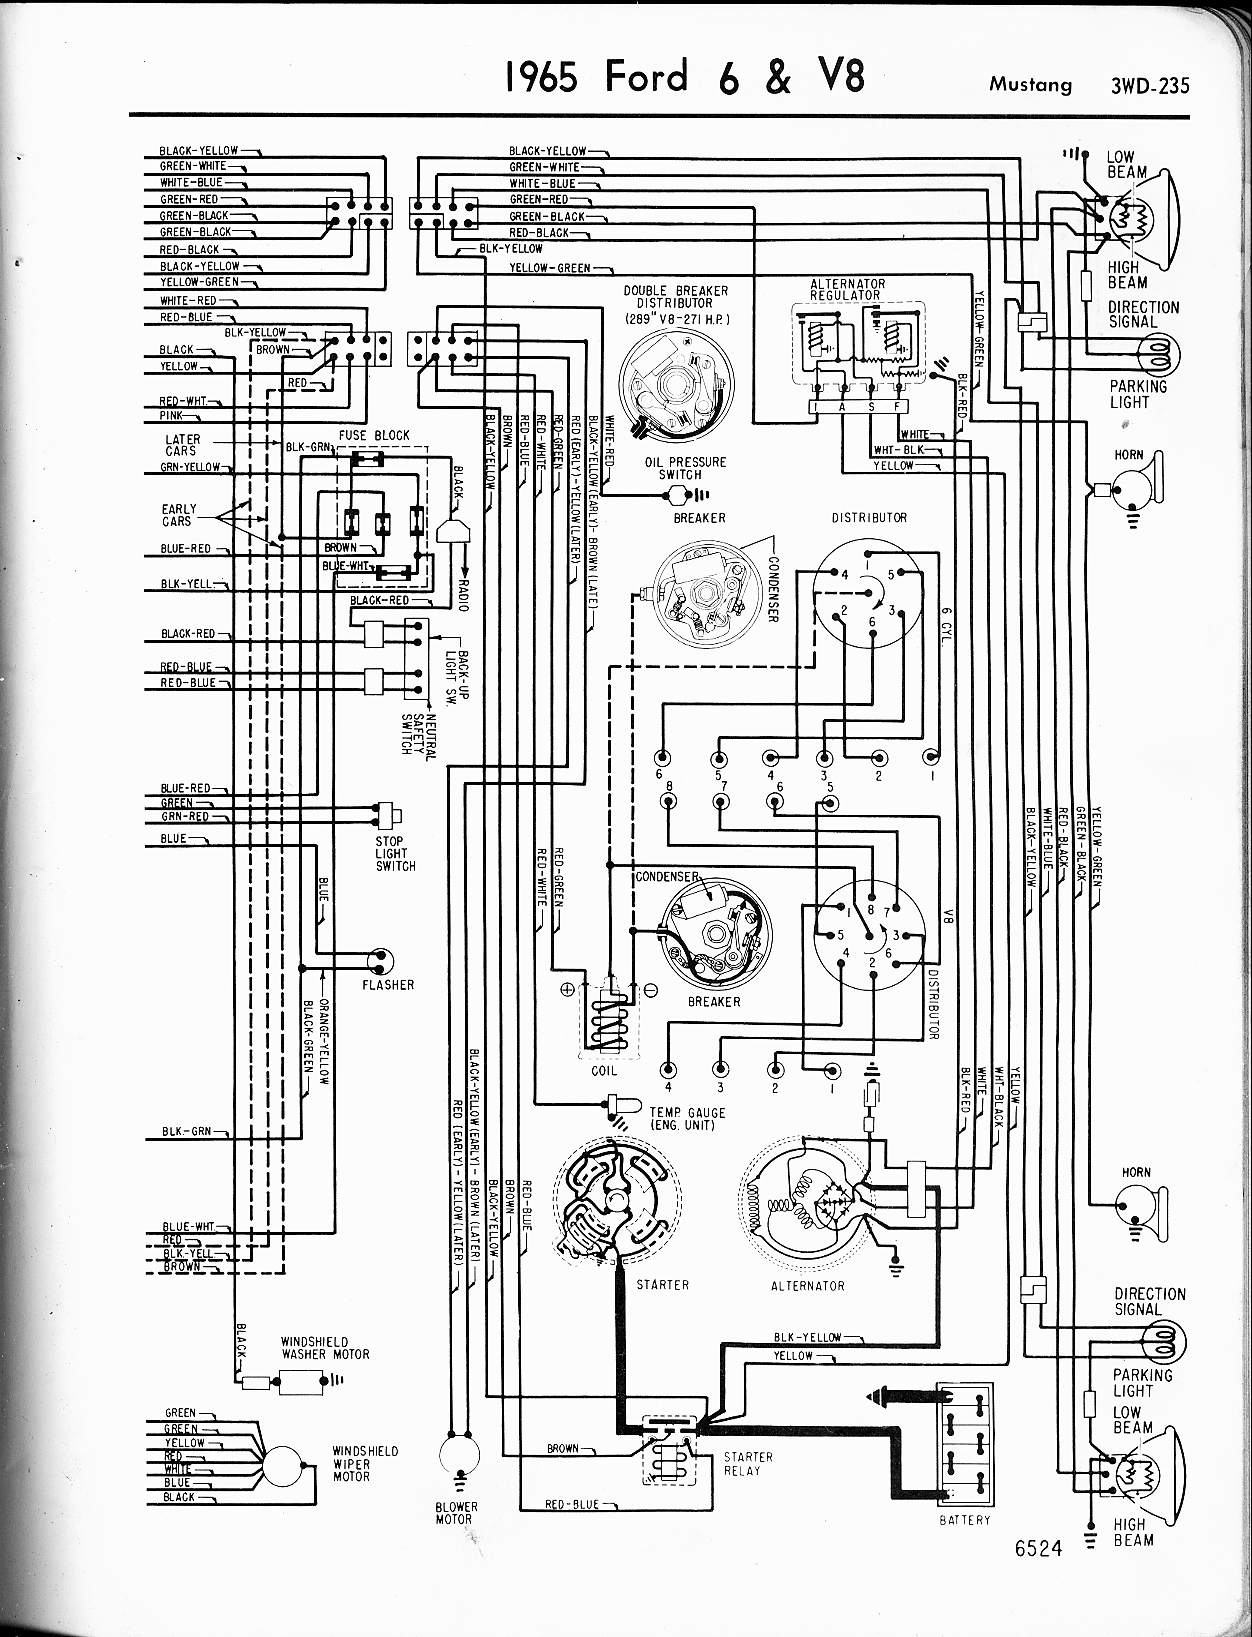 Ford Diagrams 1964 Vw Alternator Wiring 65 Mustang Diagram 2 Drawing B